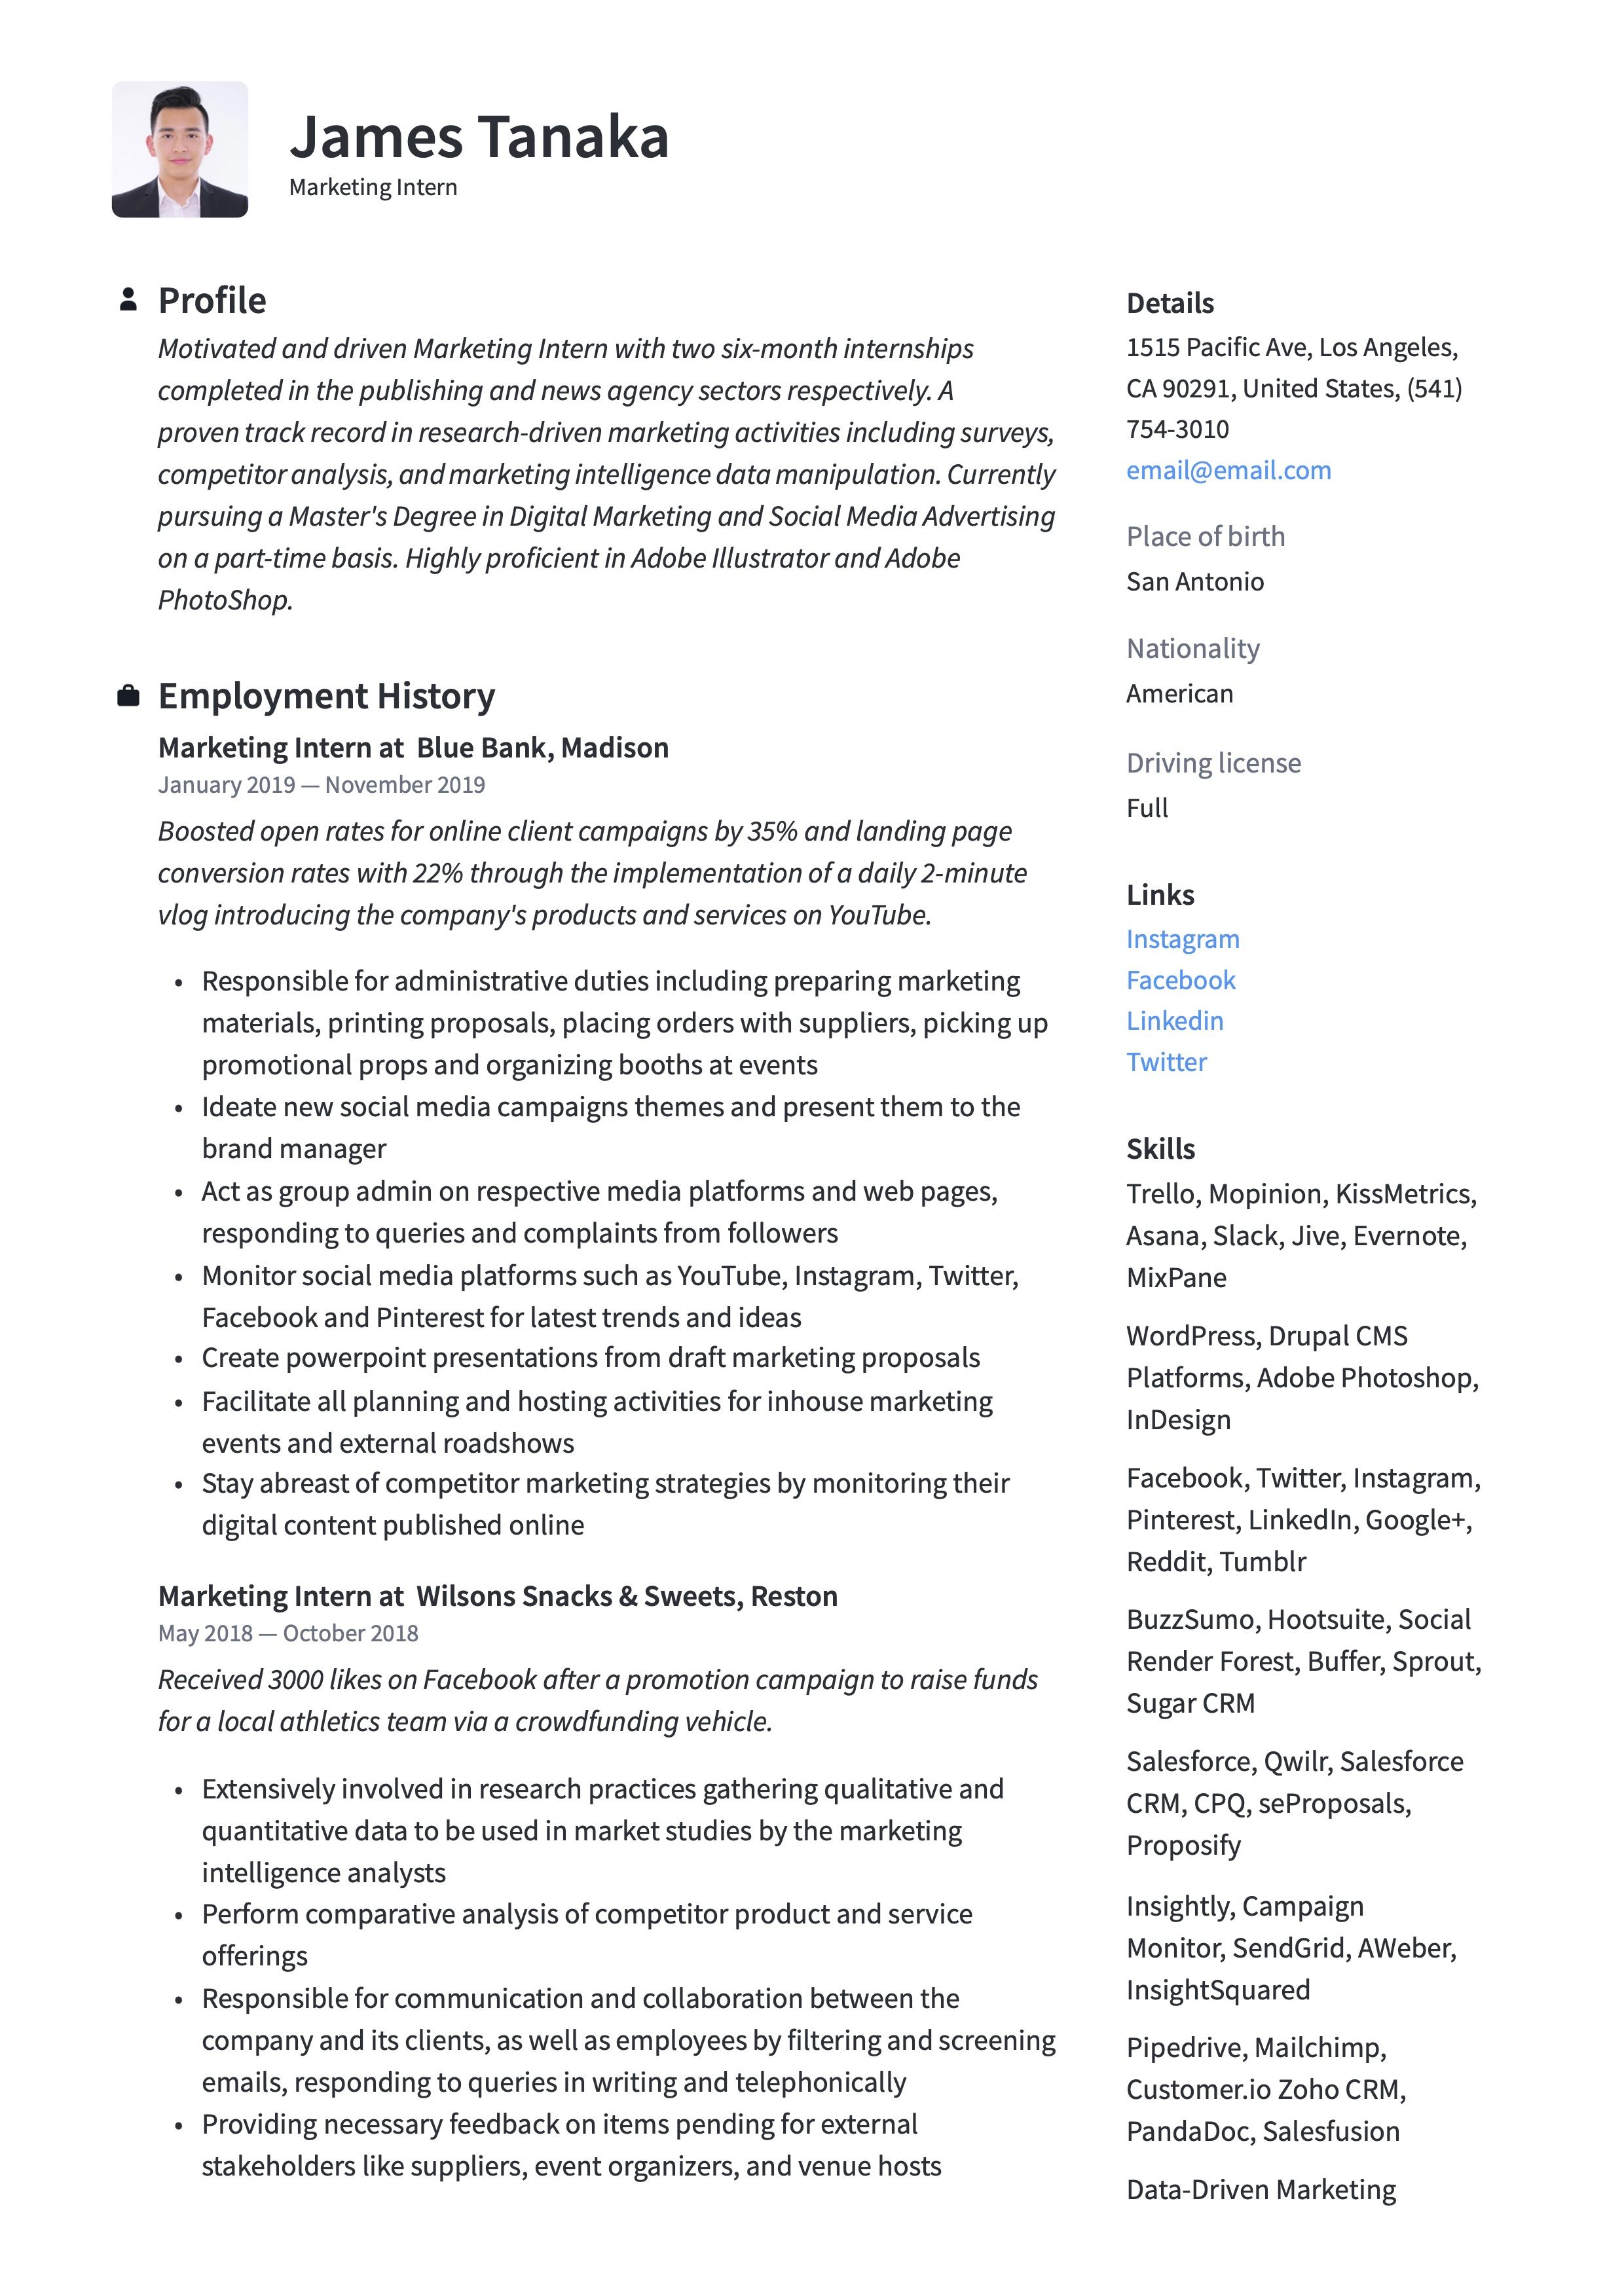 Easy Applying For Two Jobs At The Same Company Reddit In Usa Company, location, salary, relocation bonus, signing bonus, stock, and total compensation. jobs at the same company reddit